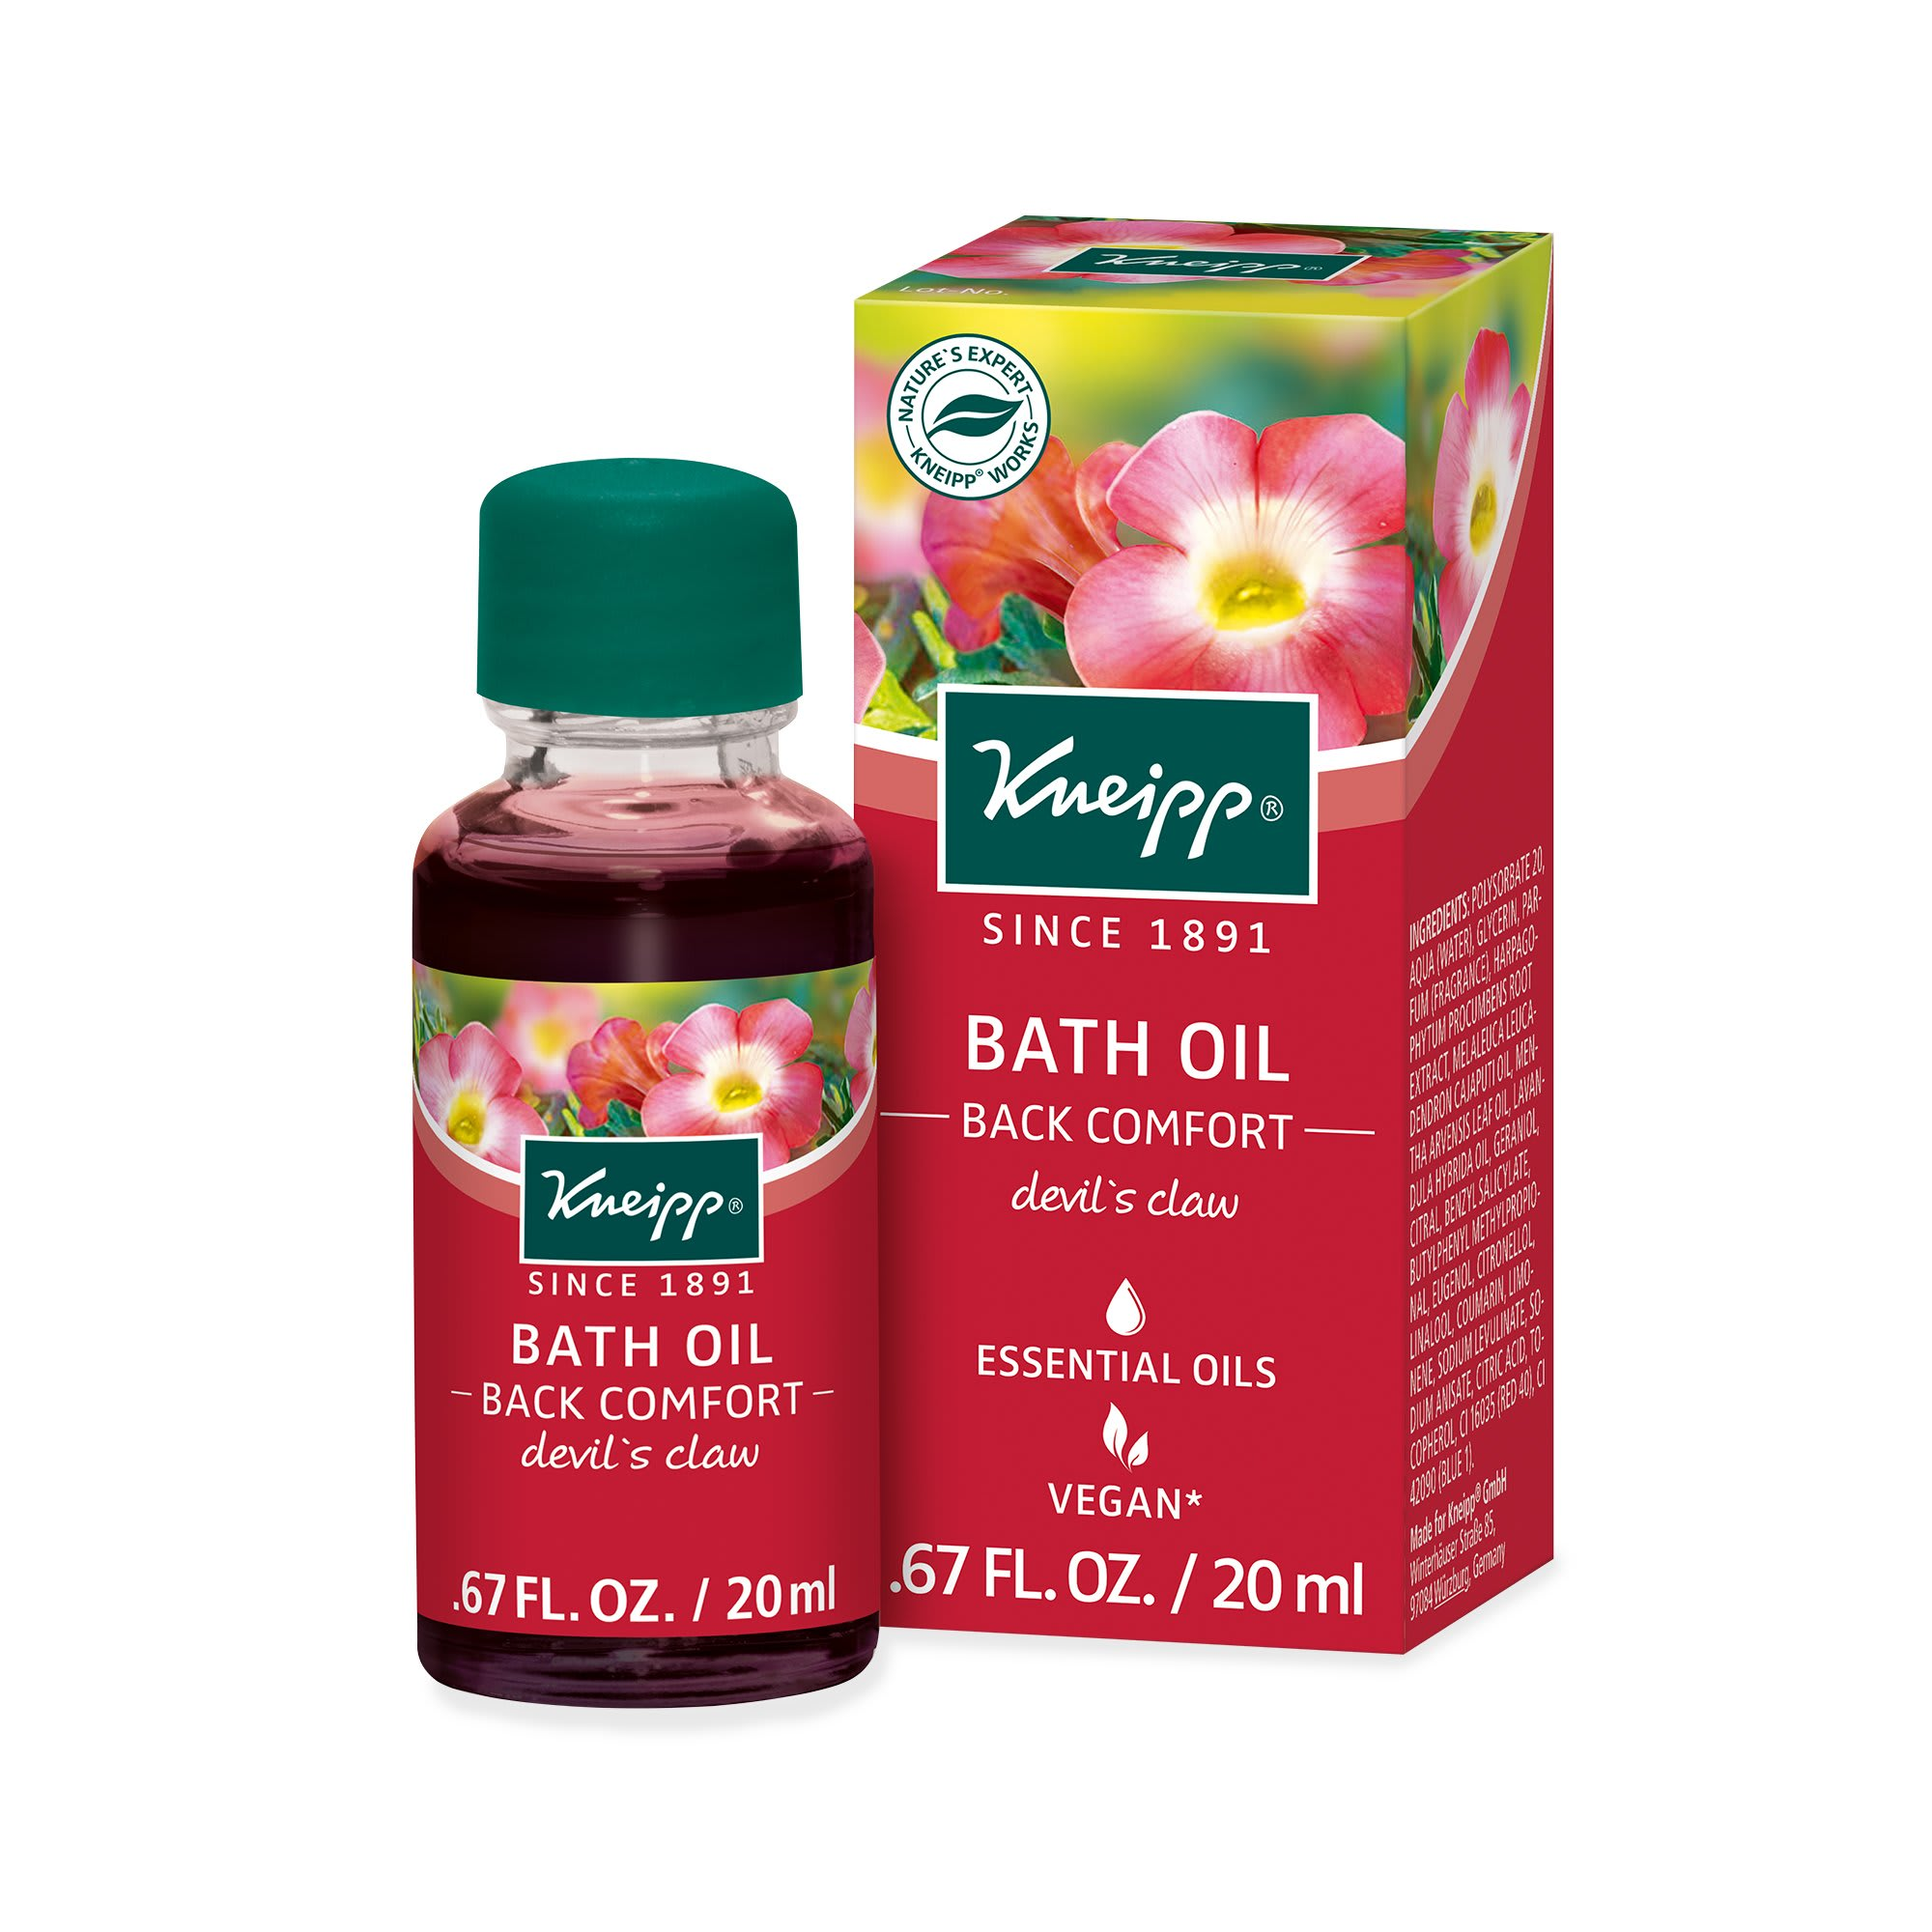 Kneipp Back Comfort Bath Oil